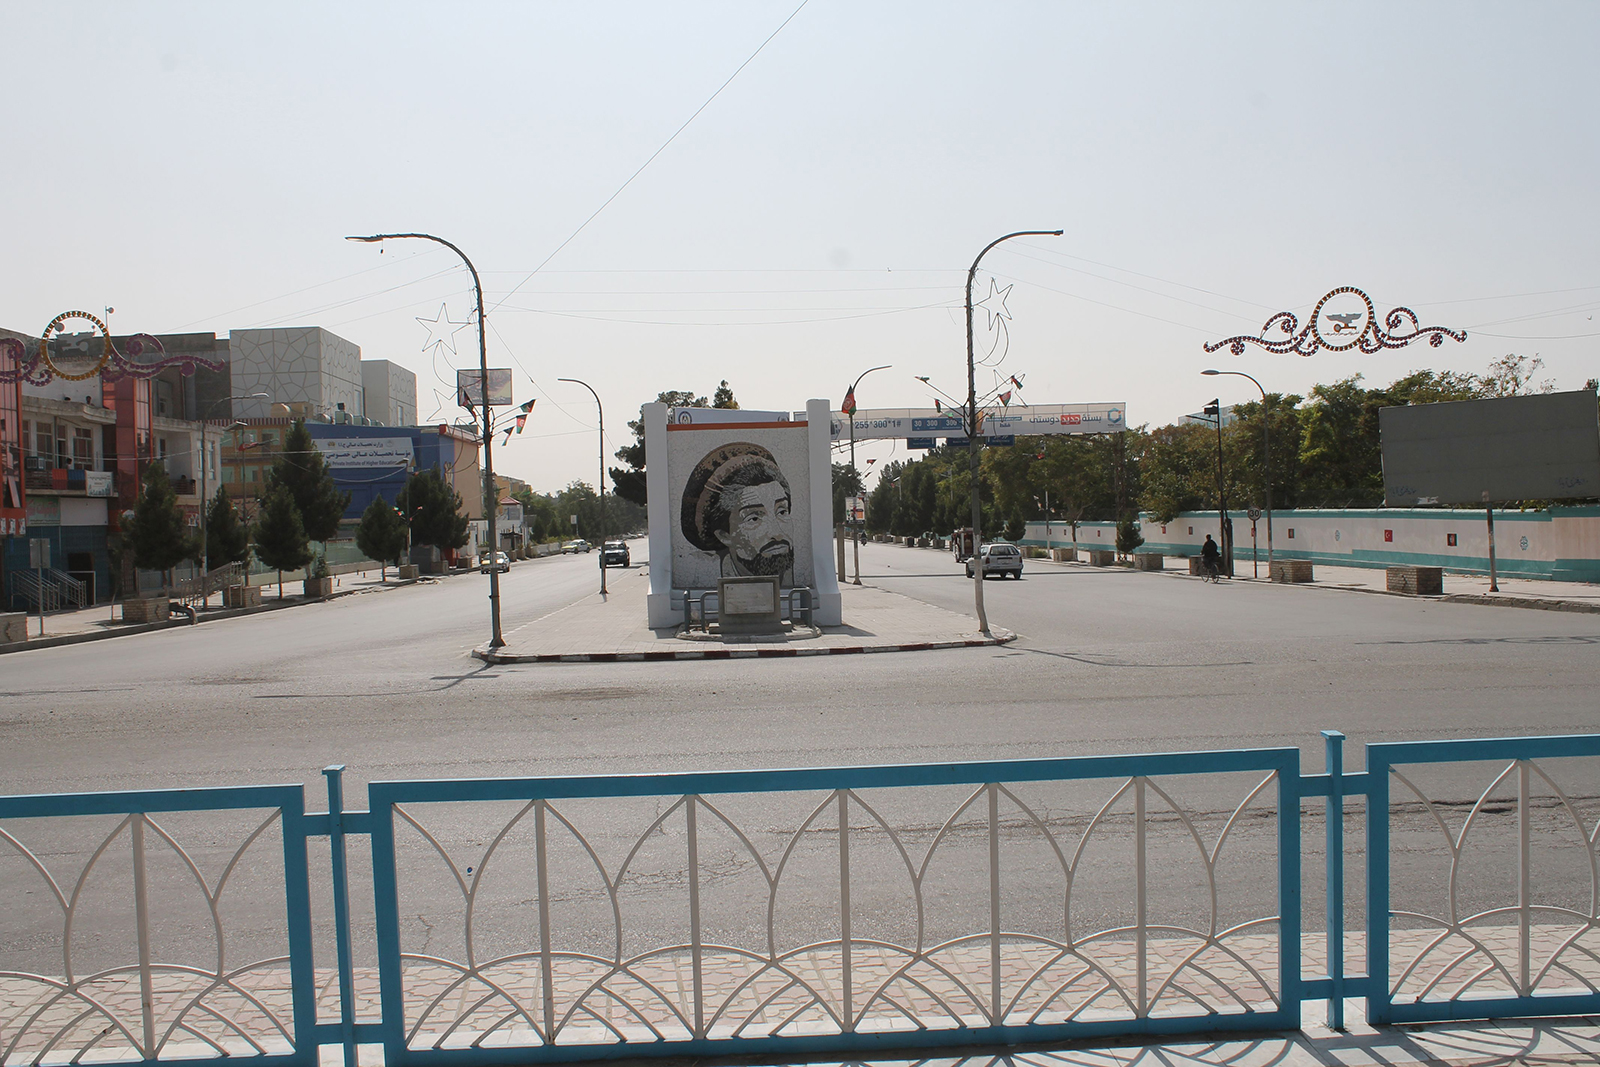 A view of a deserted road showing a monument with image of former Mujahideen commander Ahmad Shah Masoud, in Mazar-i-Sharif, the provincial capital of Balkh province, Afghanistan, on August 14.